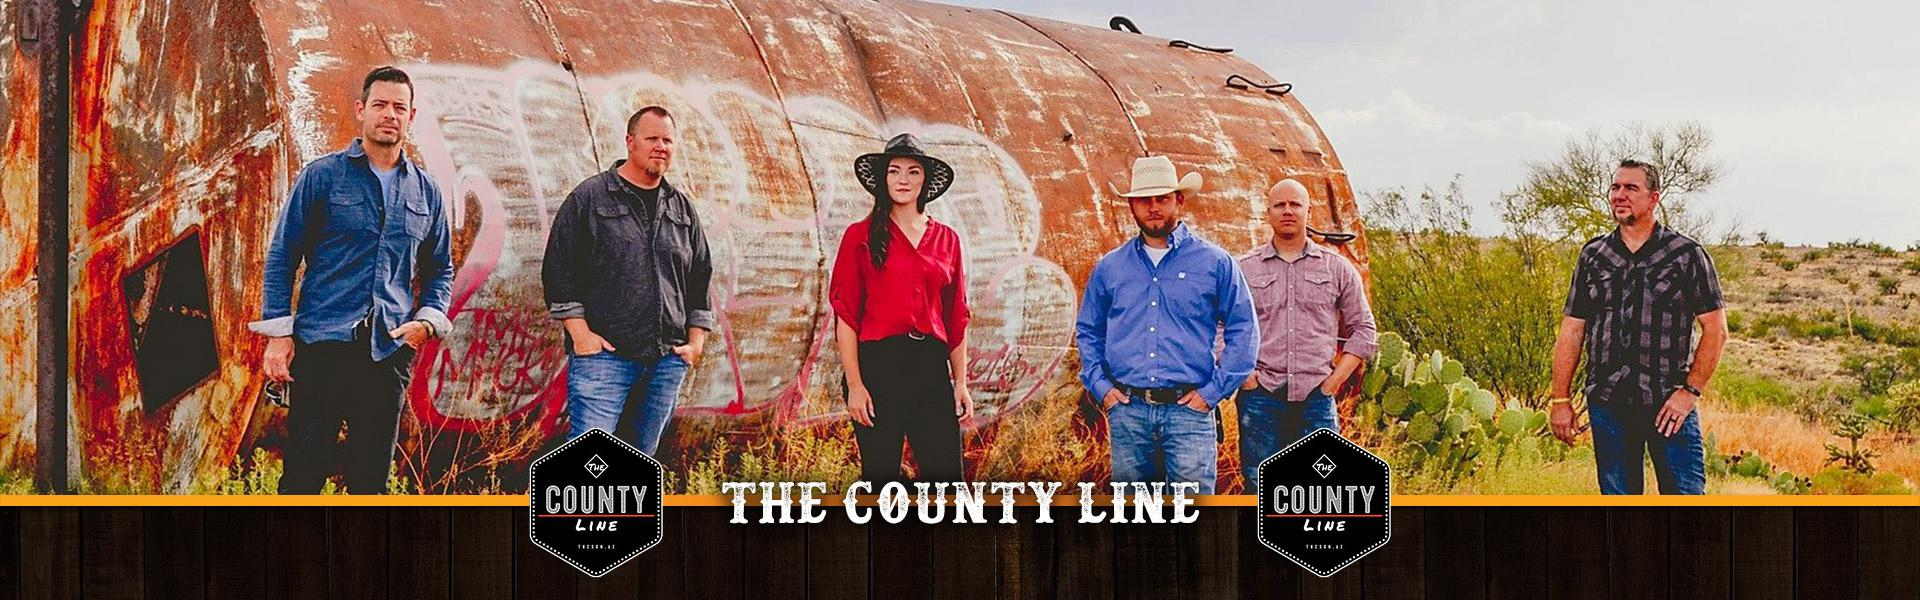 The County Line Band - Tucson AZ Country Music